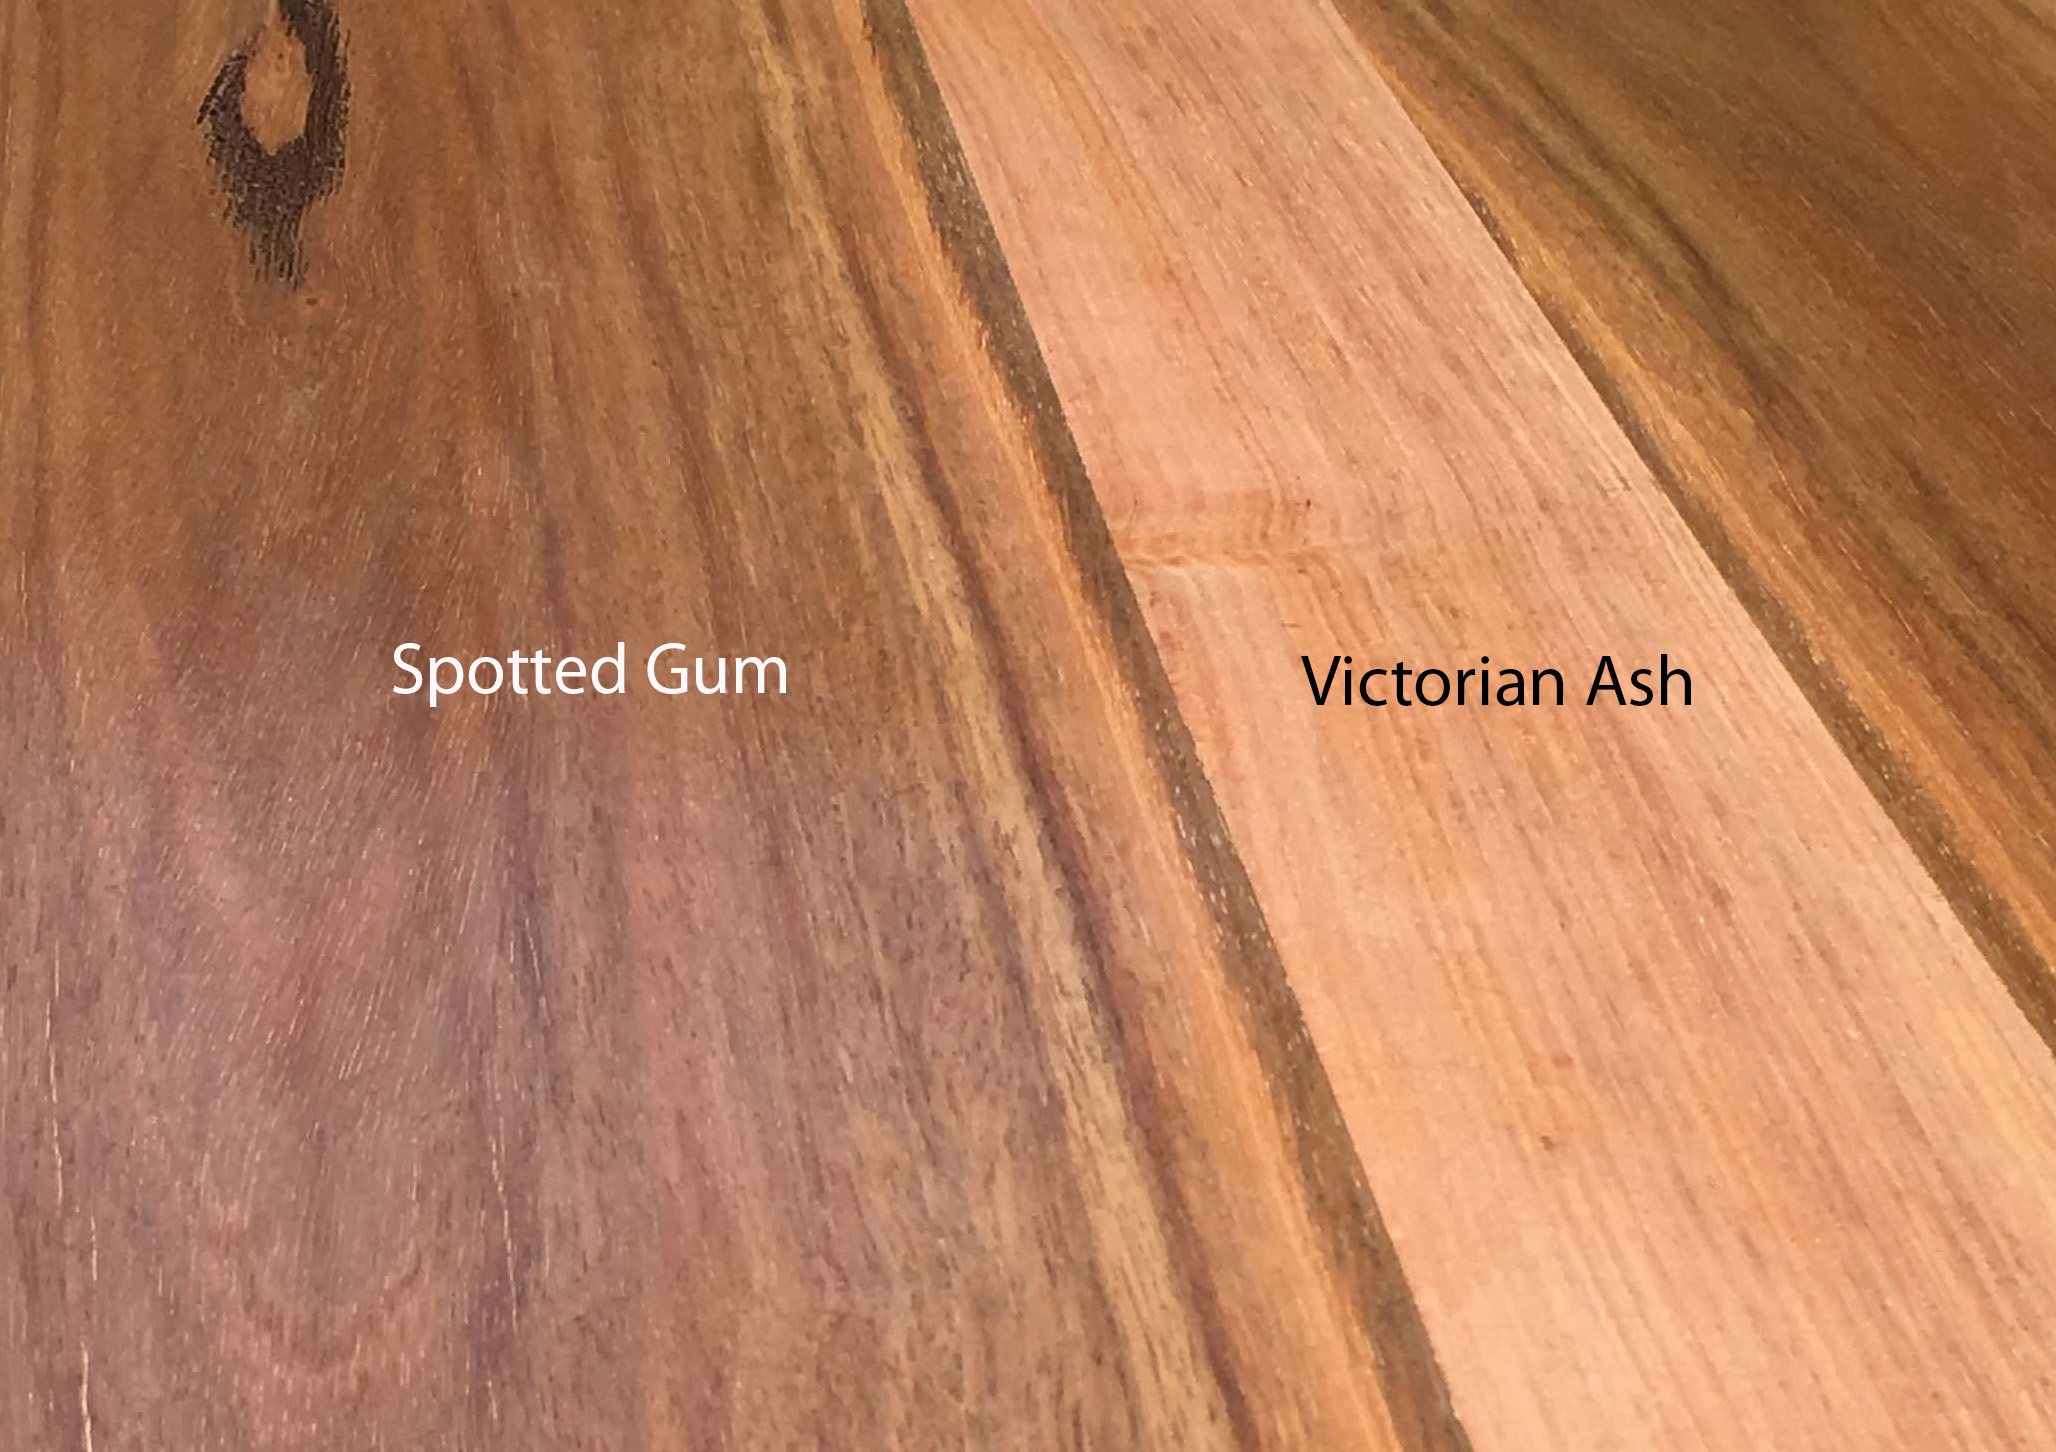 Spotted Gum and Victorian Ash